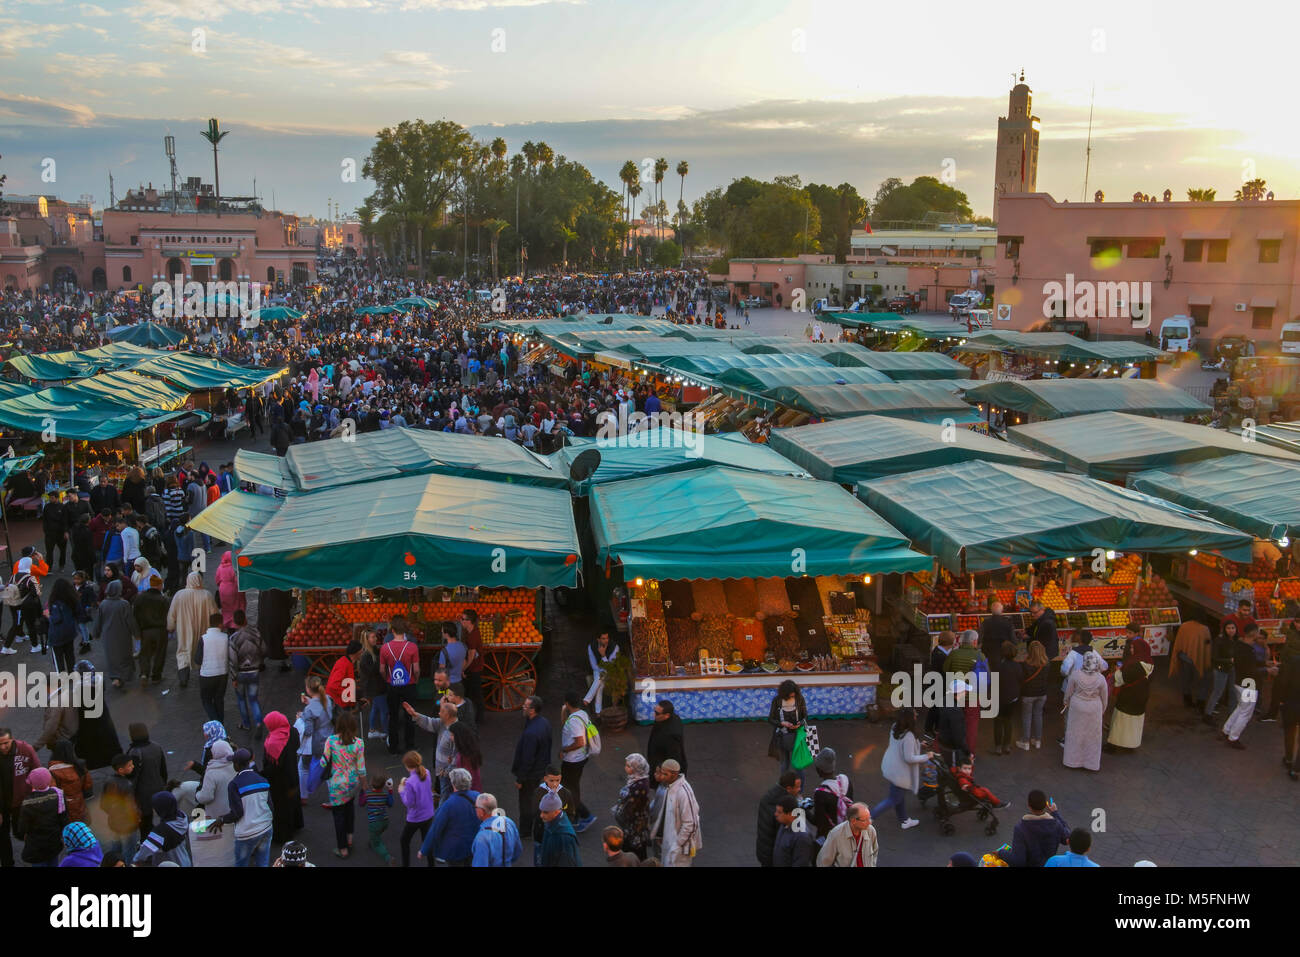 View of the famous Jamaâ El Fna Square and Koutoubia Mosque in Marrakesh, Morocco. - Stock Image